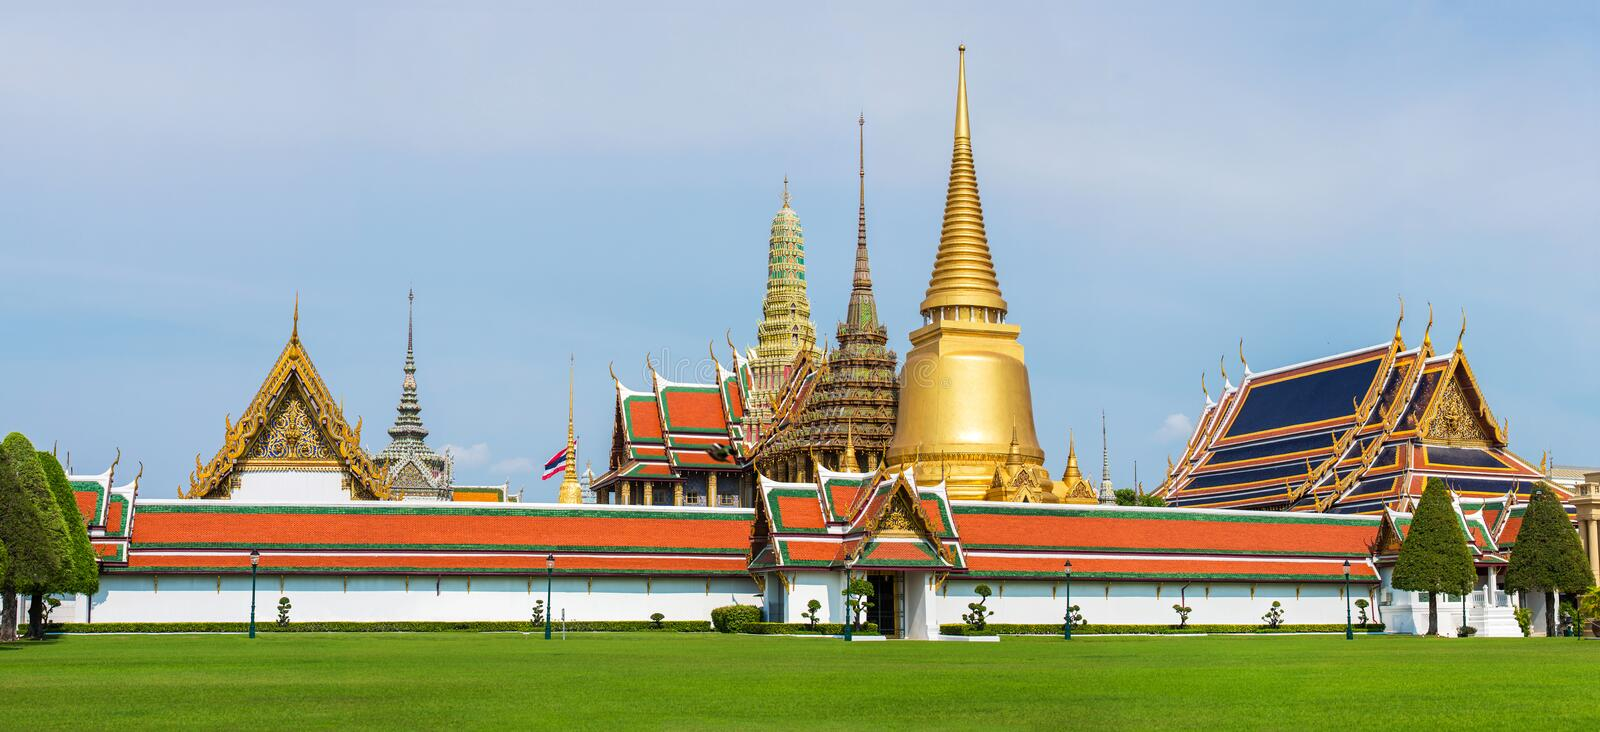 Grand Palace and Temple of Emerald Buddha complex in Bangkok royalty free stock photos